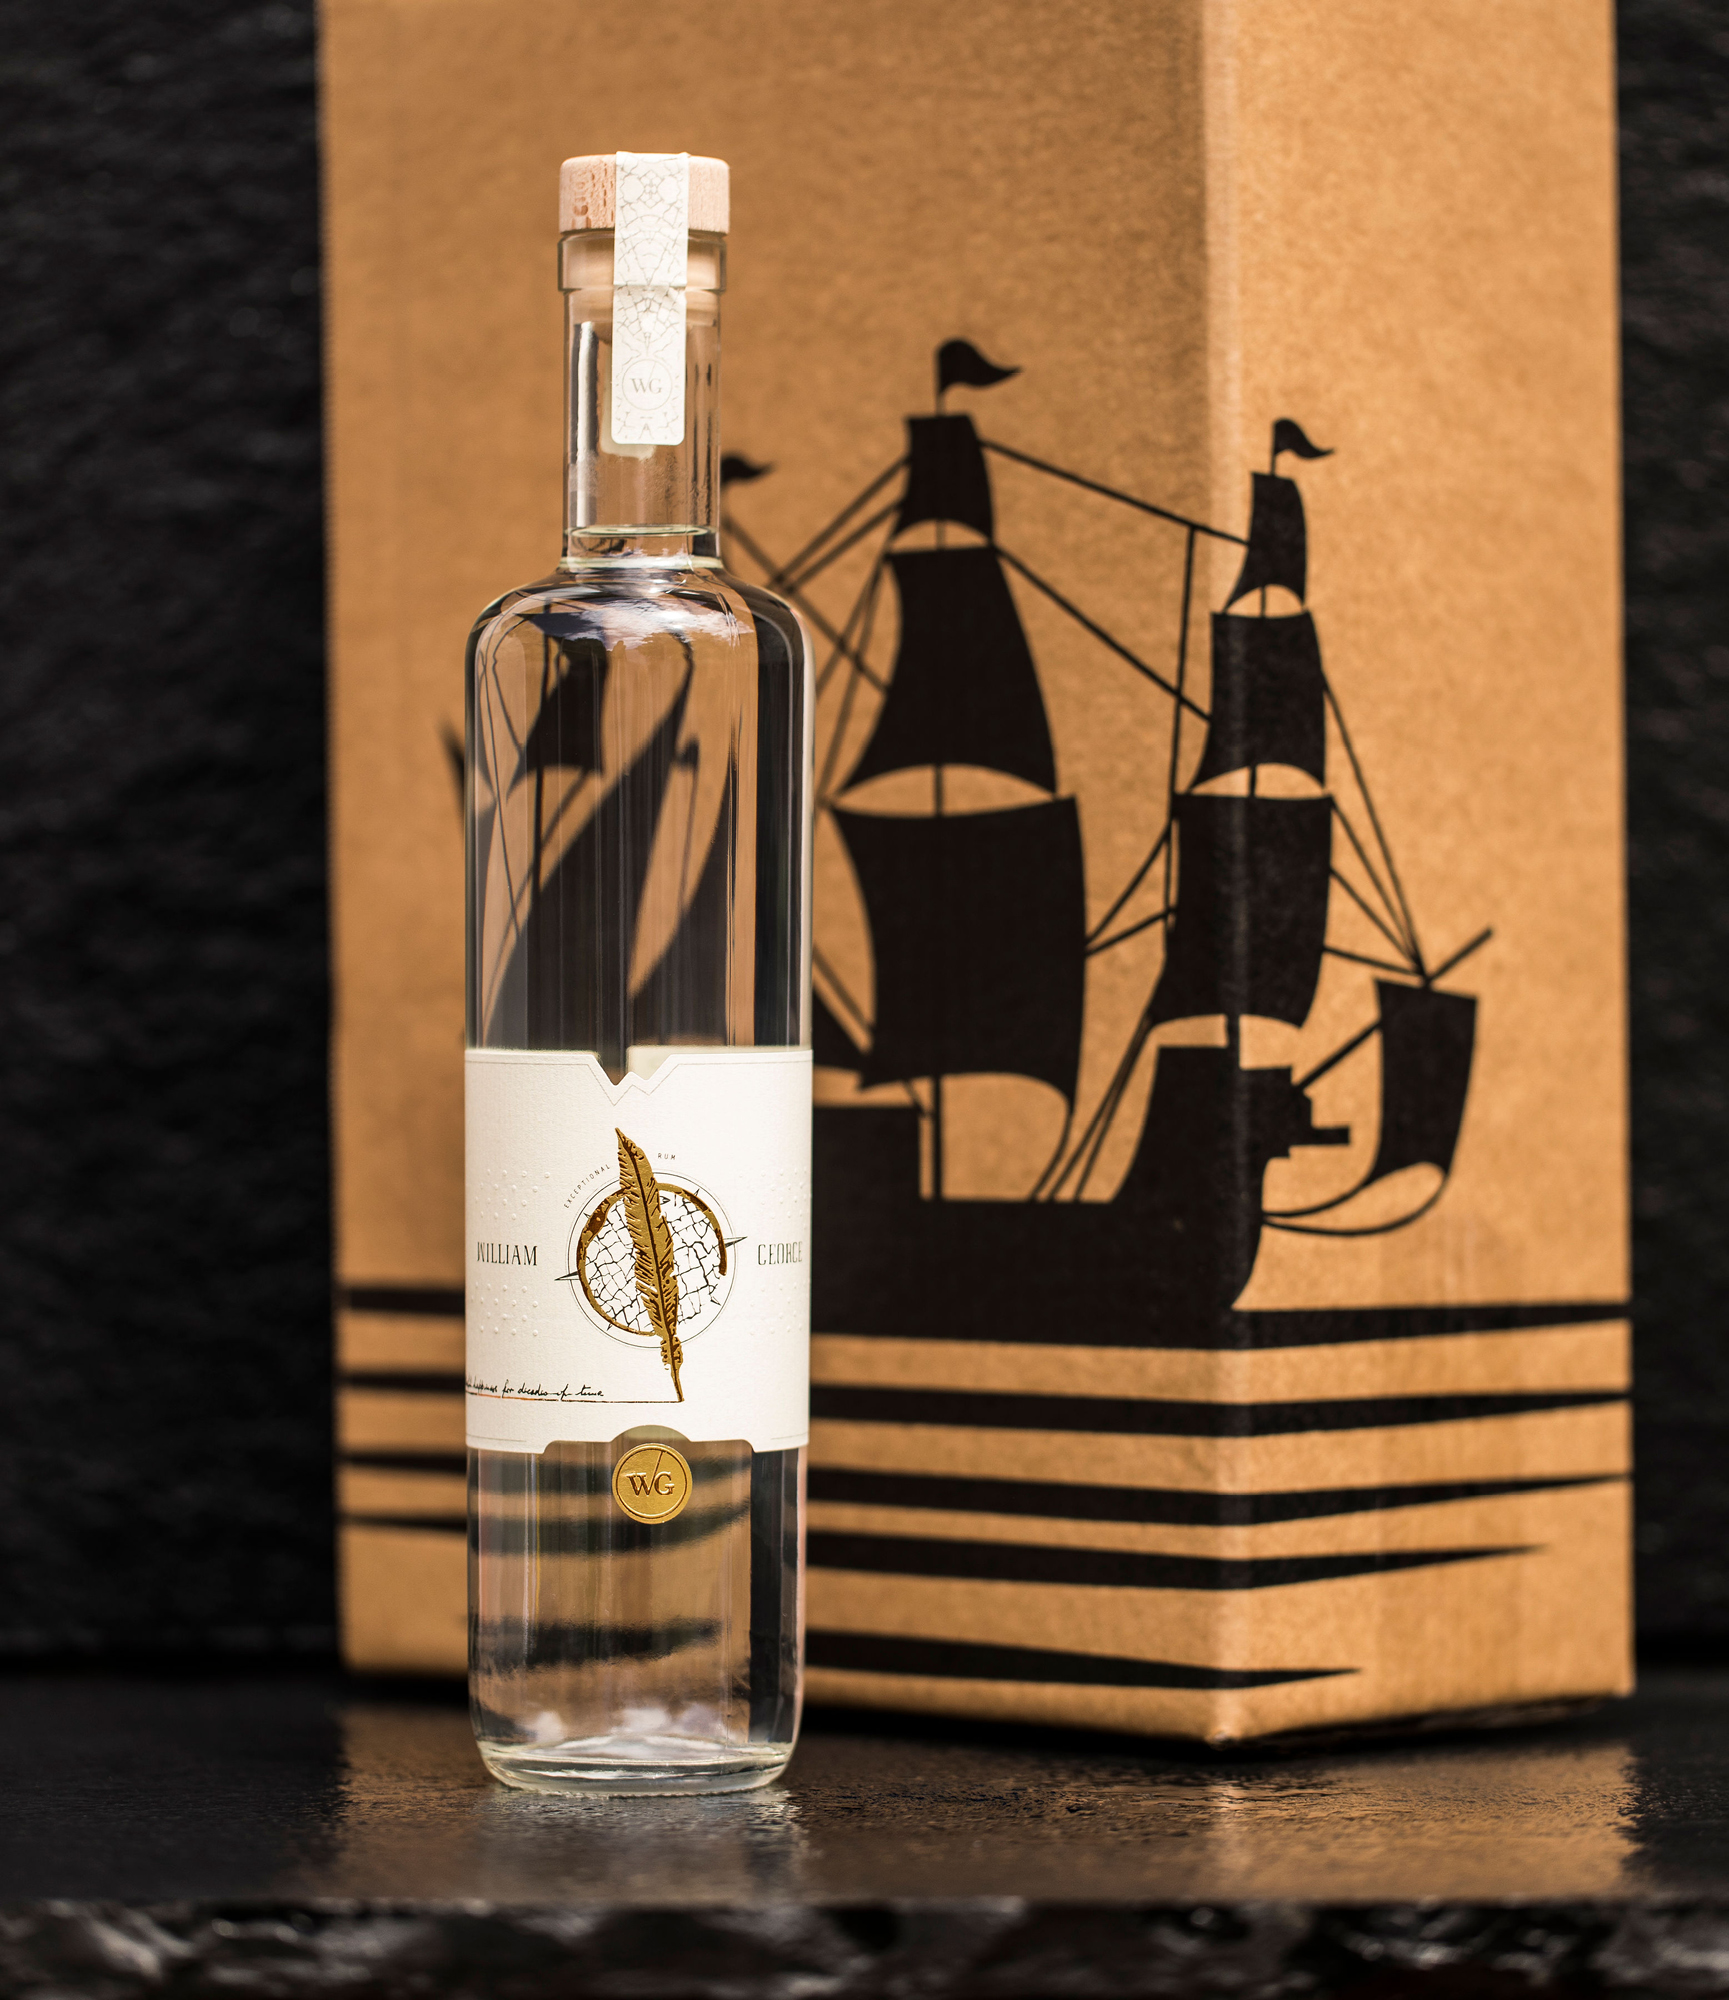 Rare international rums are delivered to your door with mixers, snacks and cocktail recipes with the Craft Rum Club